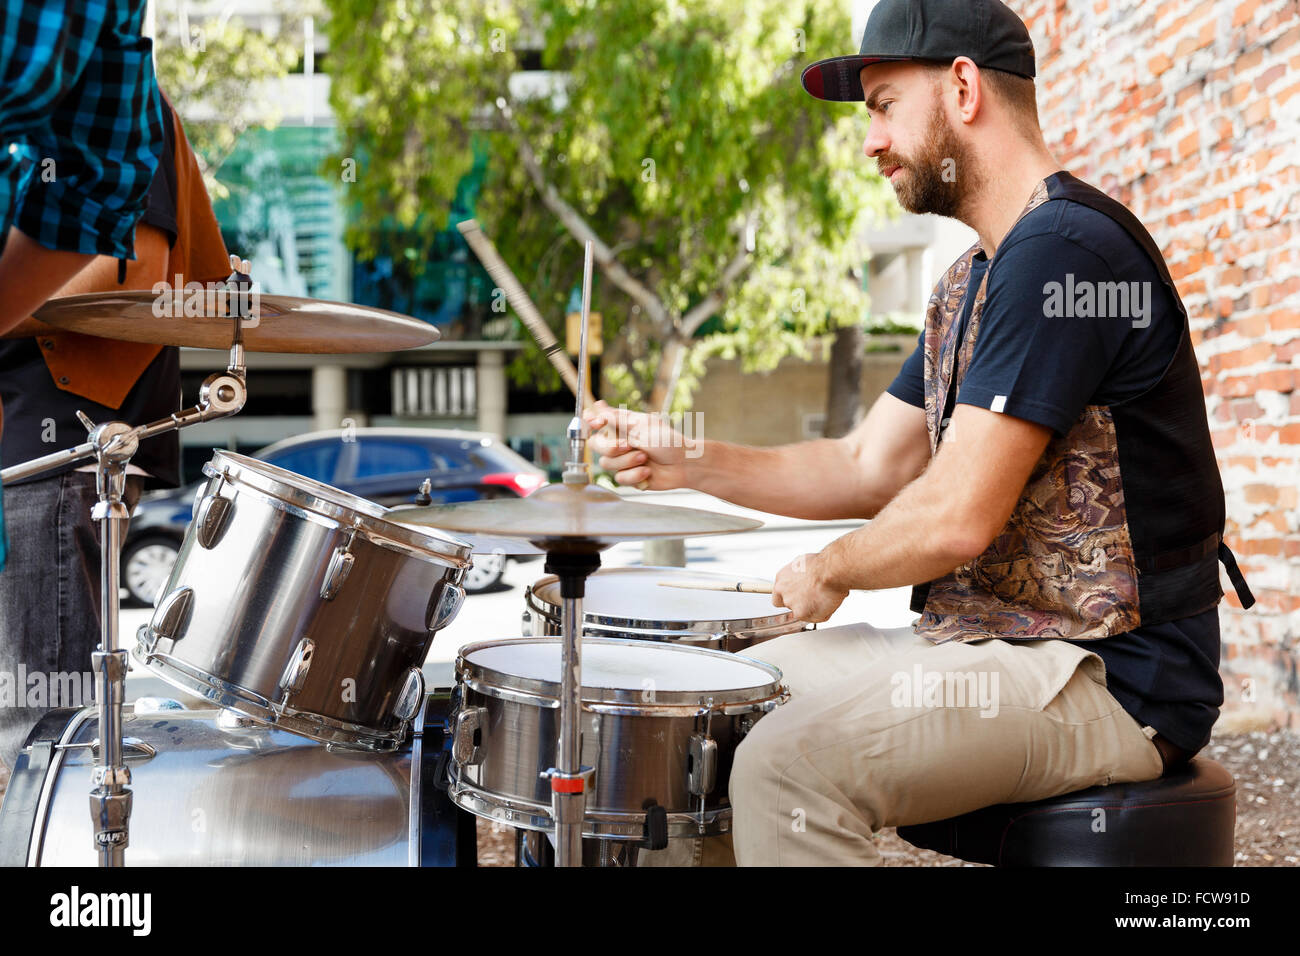 A street muscian playing drums - Stock Image